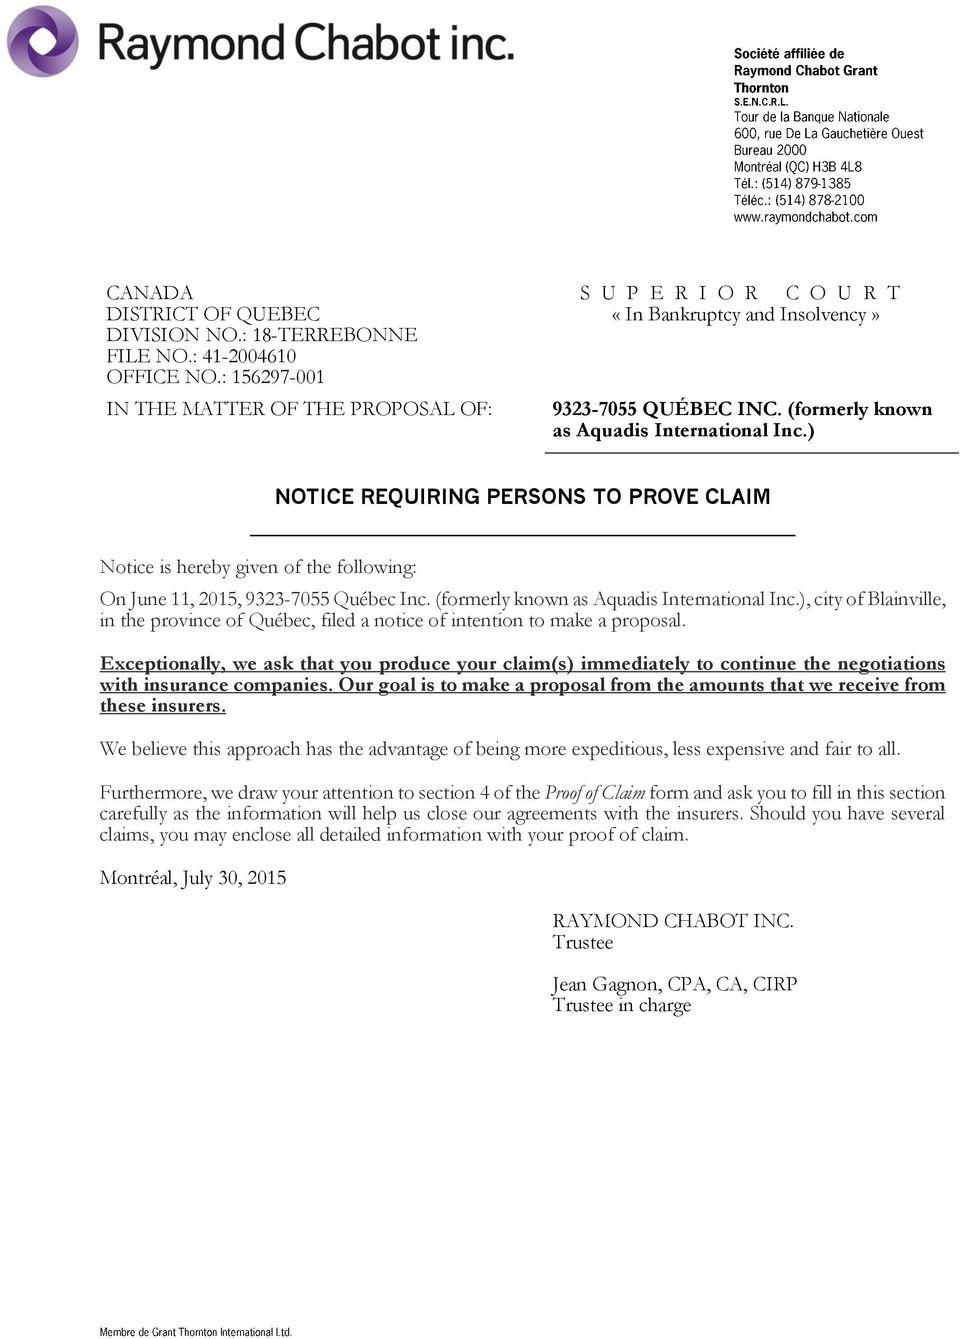 ) NOTICE REQUIRING PERSONS TO PROVE CLAIM Notice is hereby given of the following: On June 11, 2015, 9323-7055 Québec Inc. (formerly known as Aquadis International Inc.